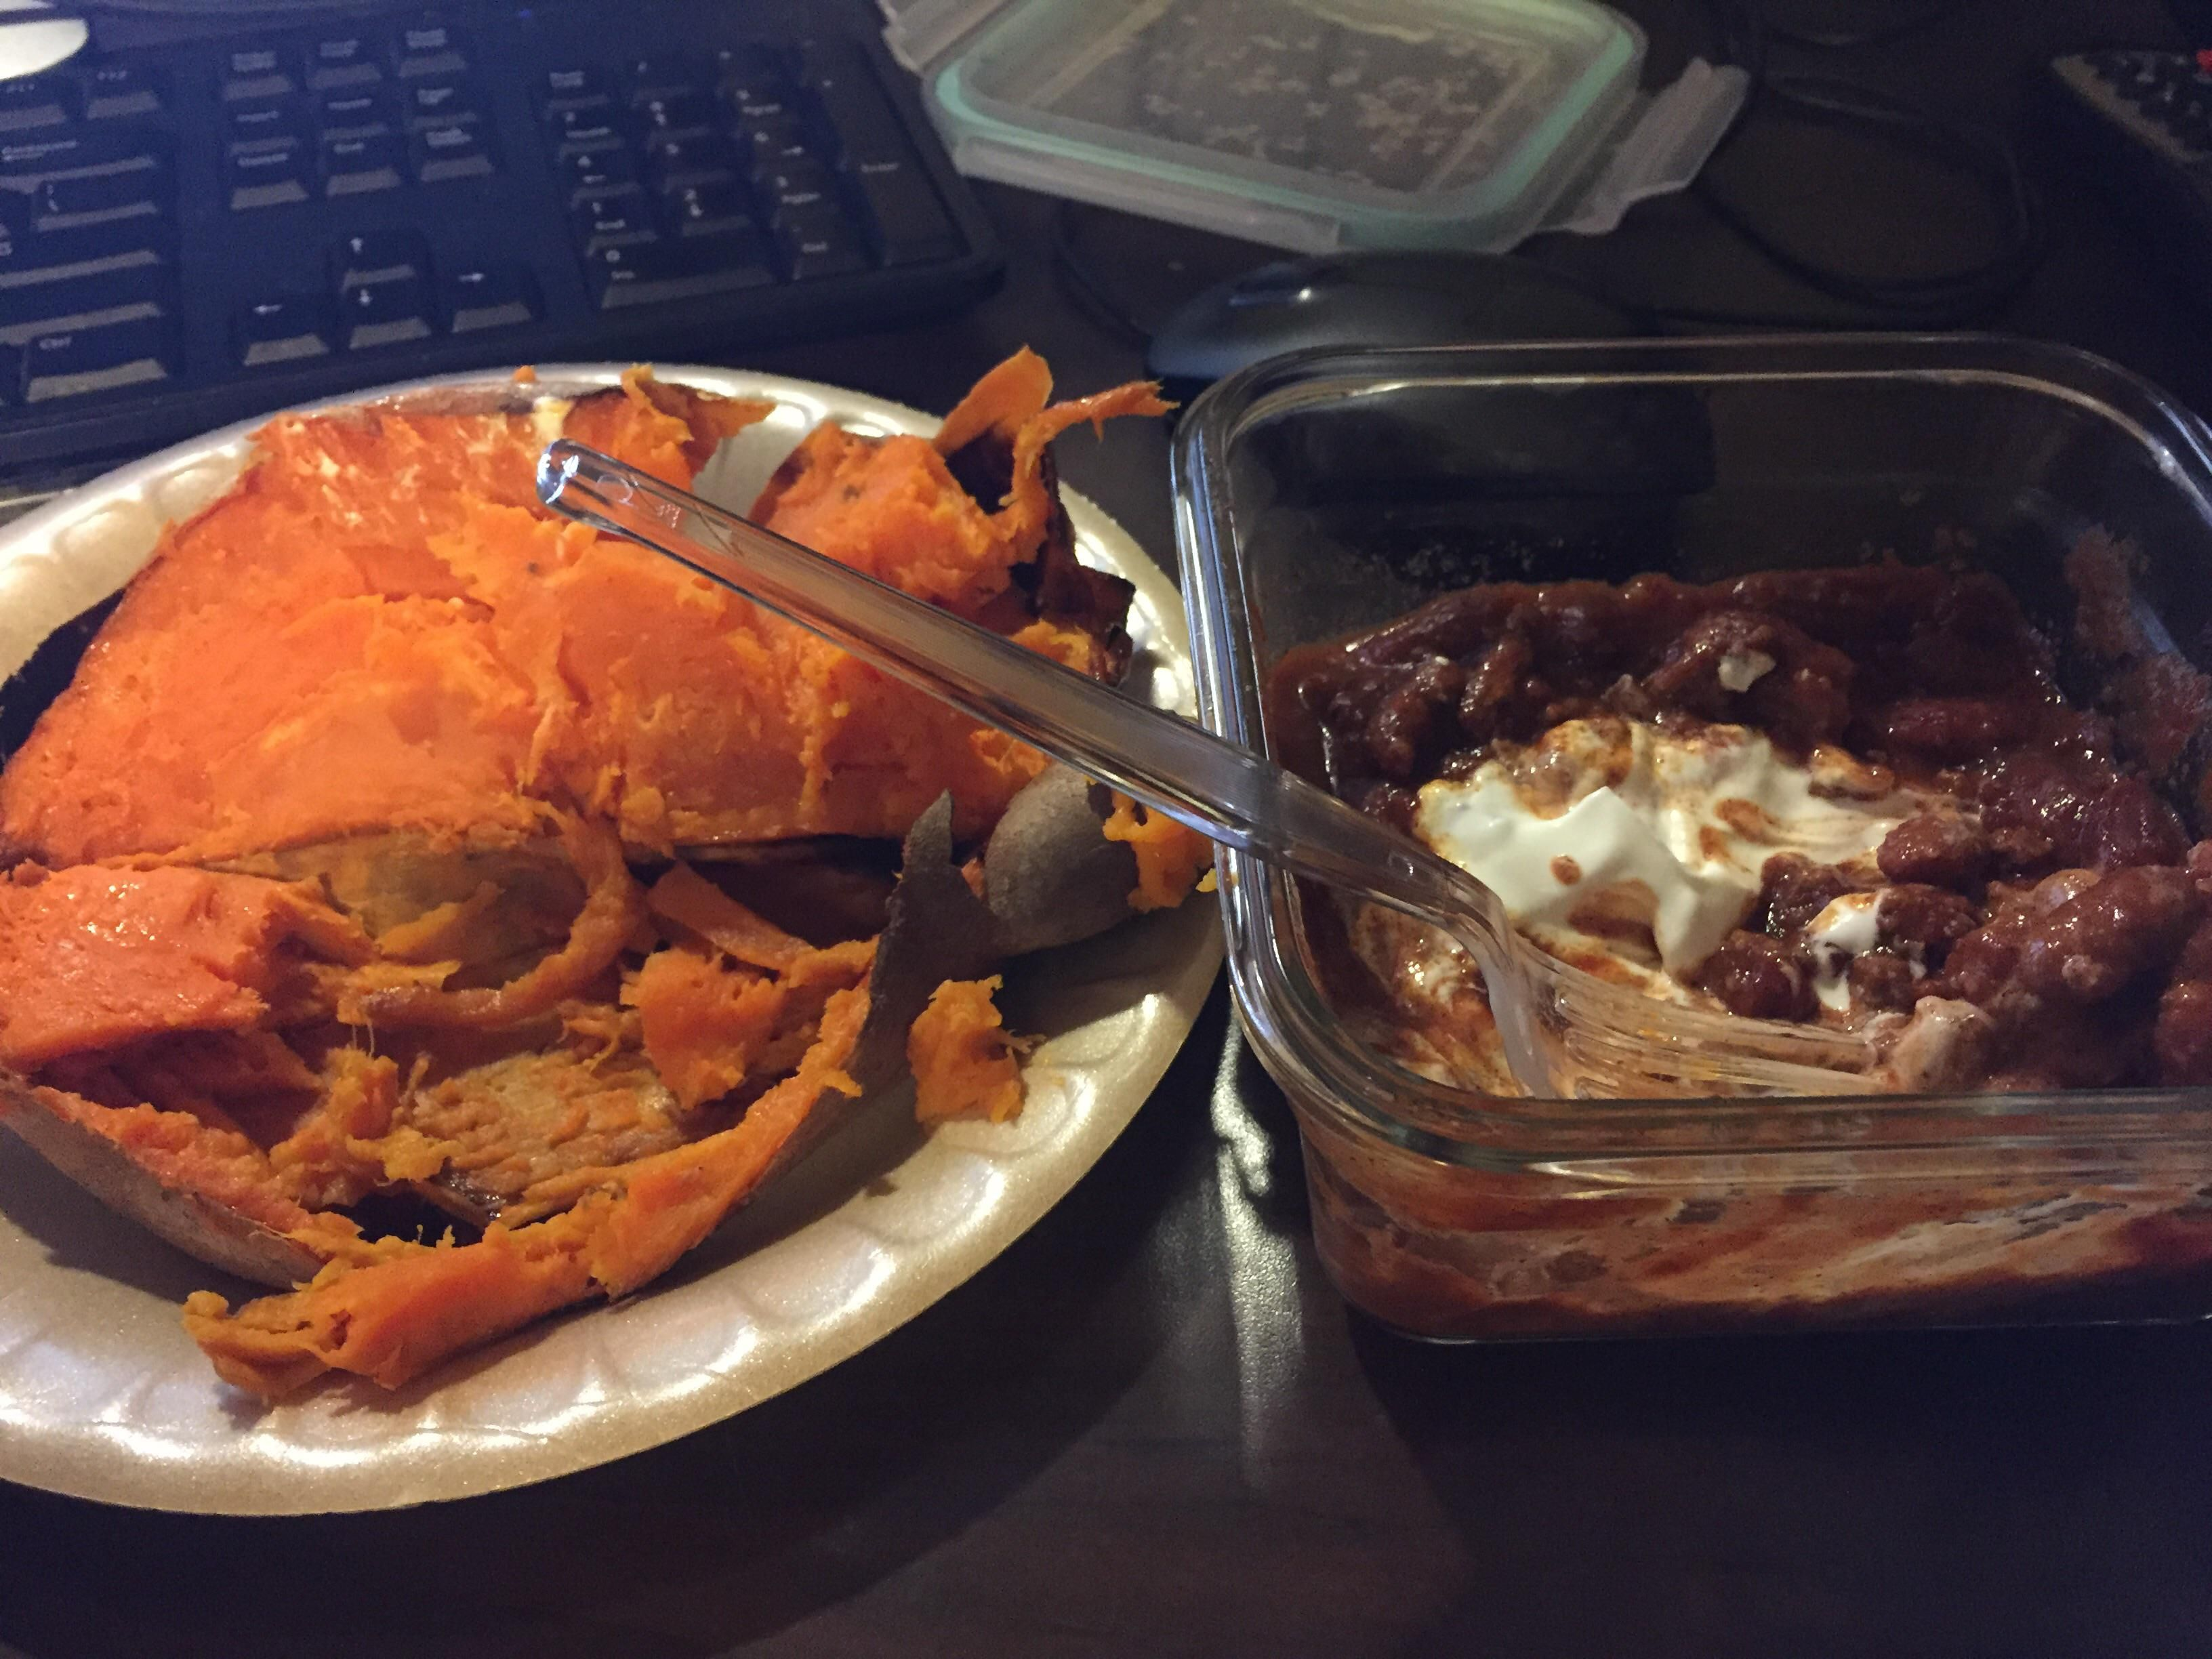 Homemade chili and a baked then microwaved sweet potato